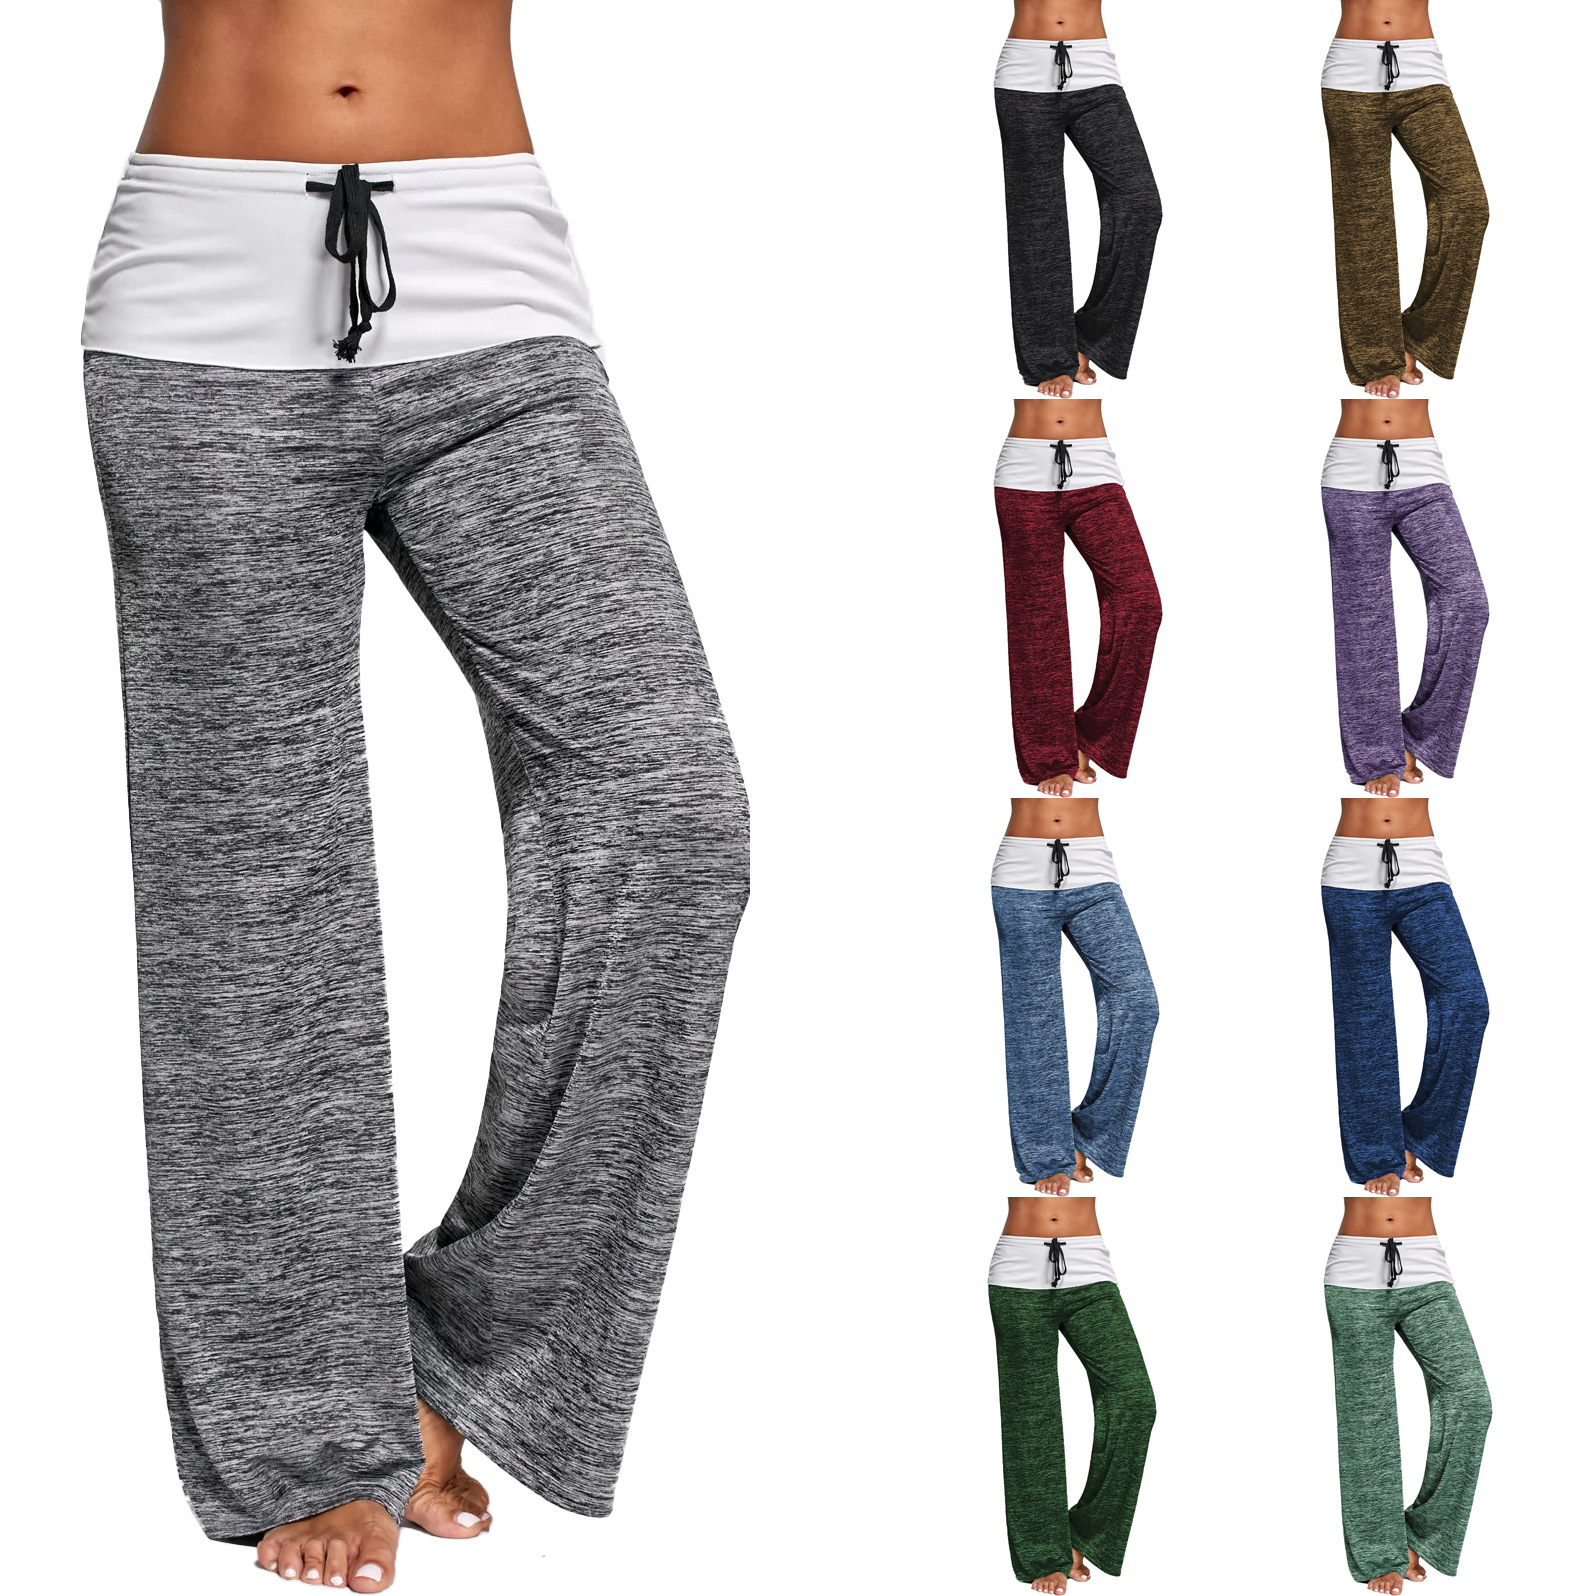 Wholesale ladies fitness sports outdoor wide leg comfortable quick dry yoga wear pants